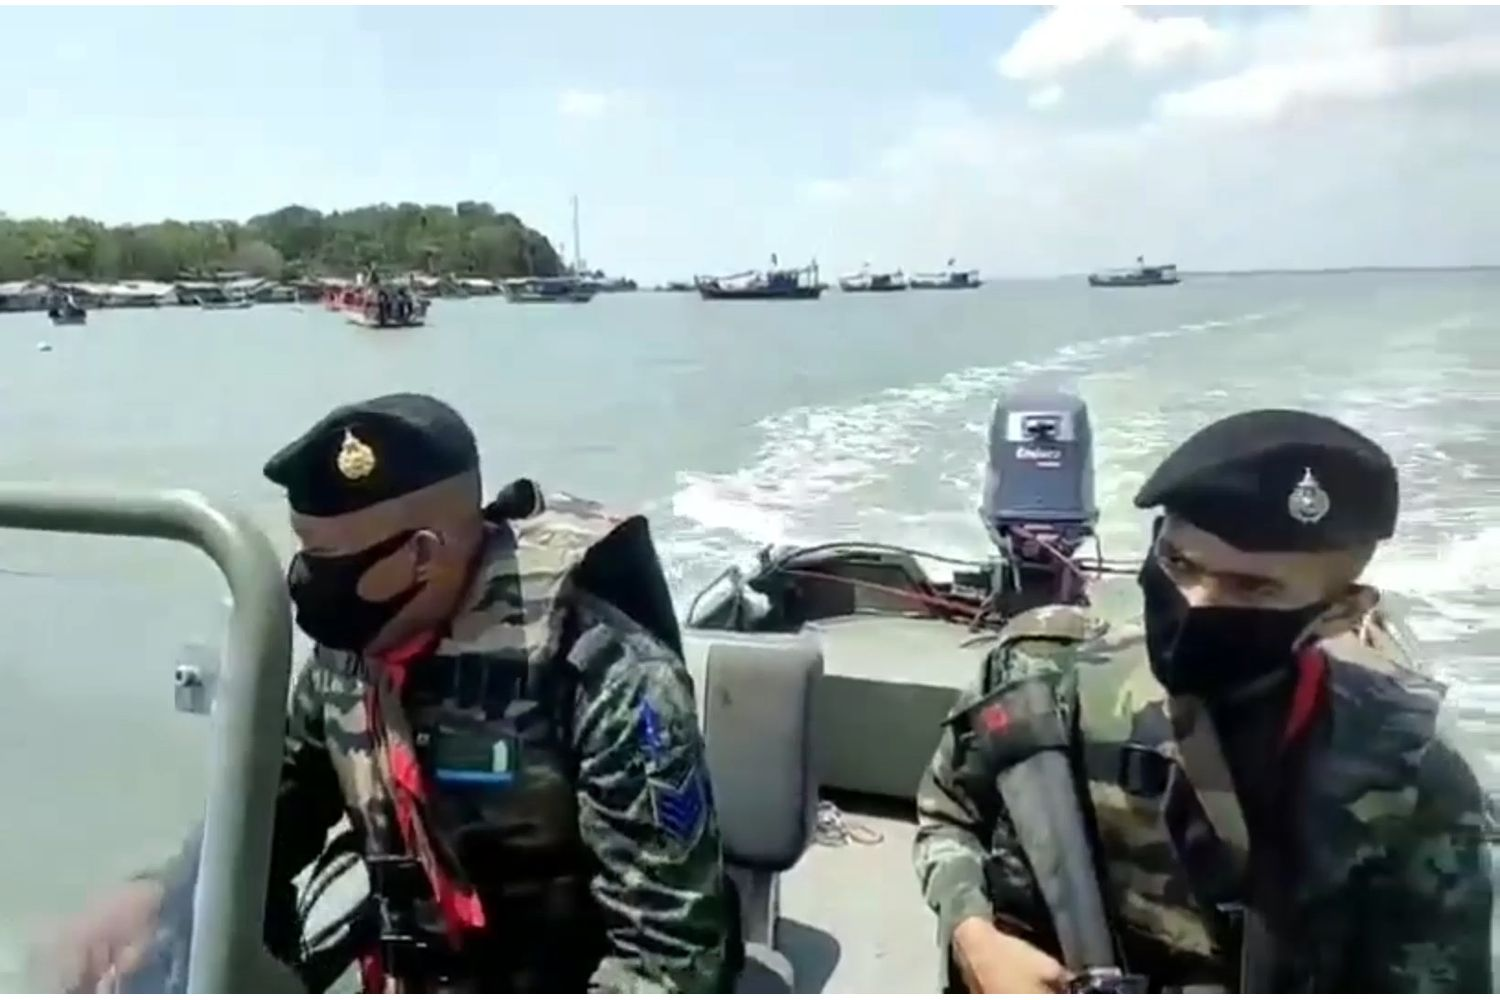 Soldiers patrol the border in Satun, preventing illegal entry by sea from Malaysia, which is in full Covid-19 lockdown. (Photo supplied/Assawin Pakkawan)